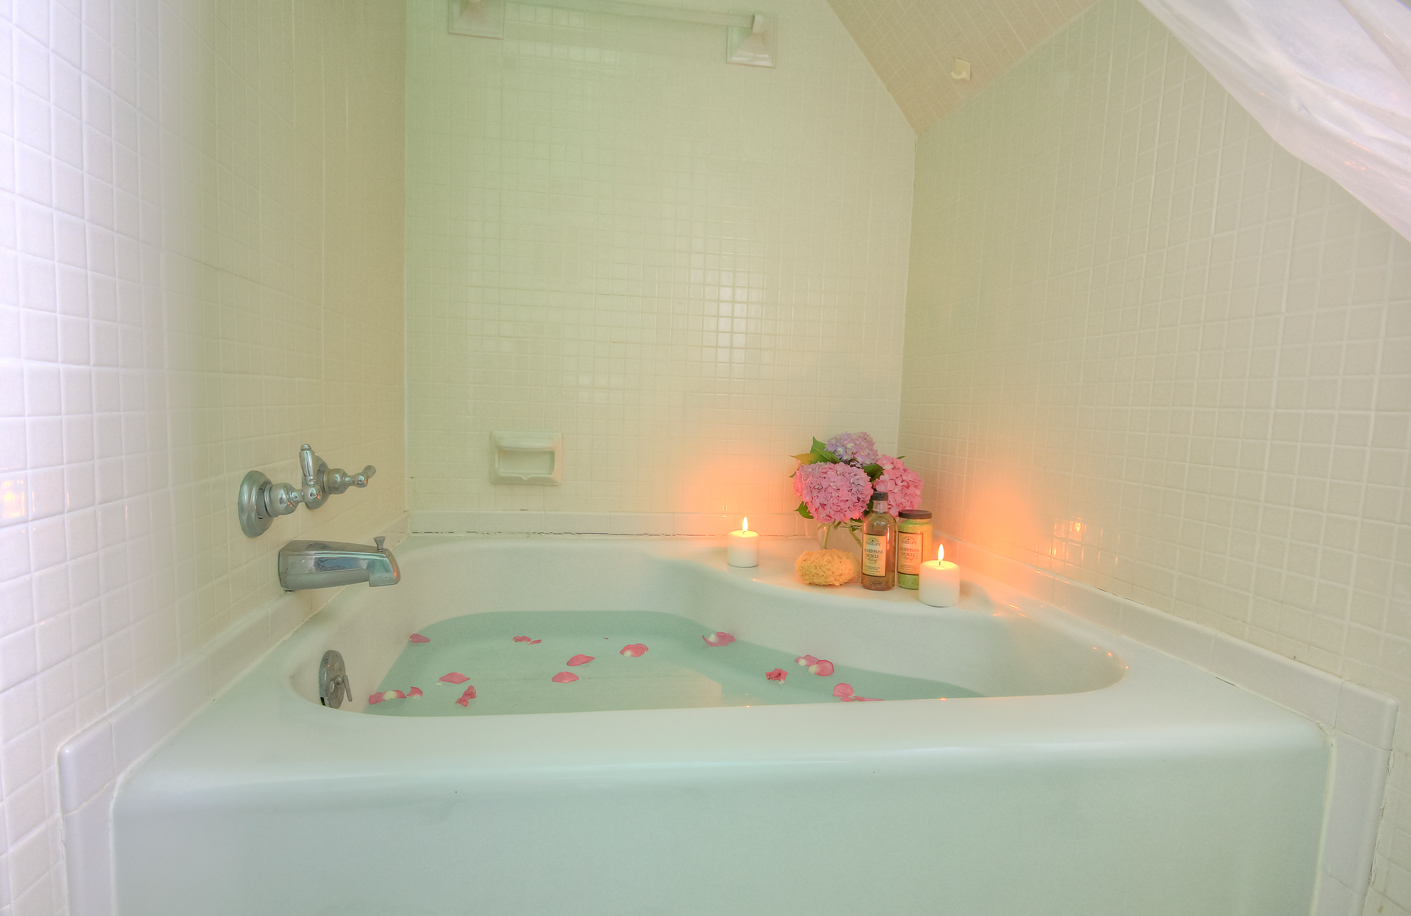 drawn bath in heart shaped tub with rose petals and lit candles